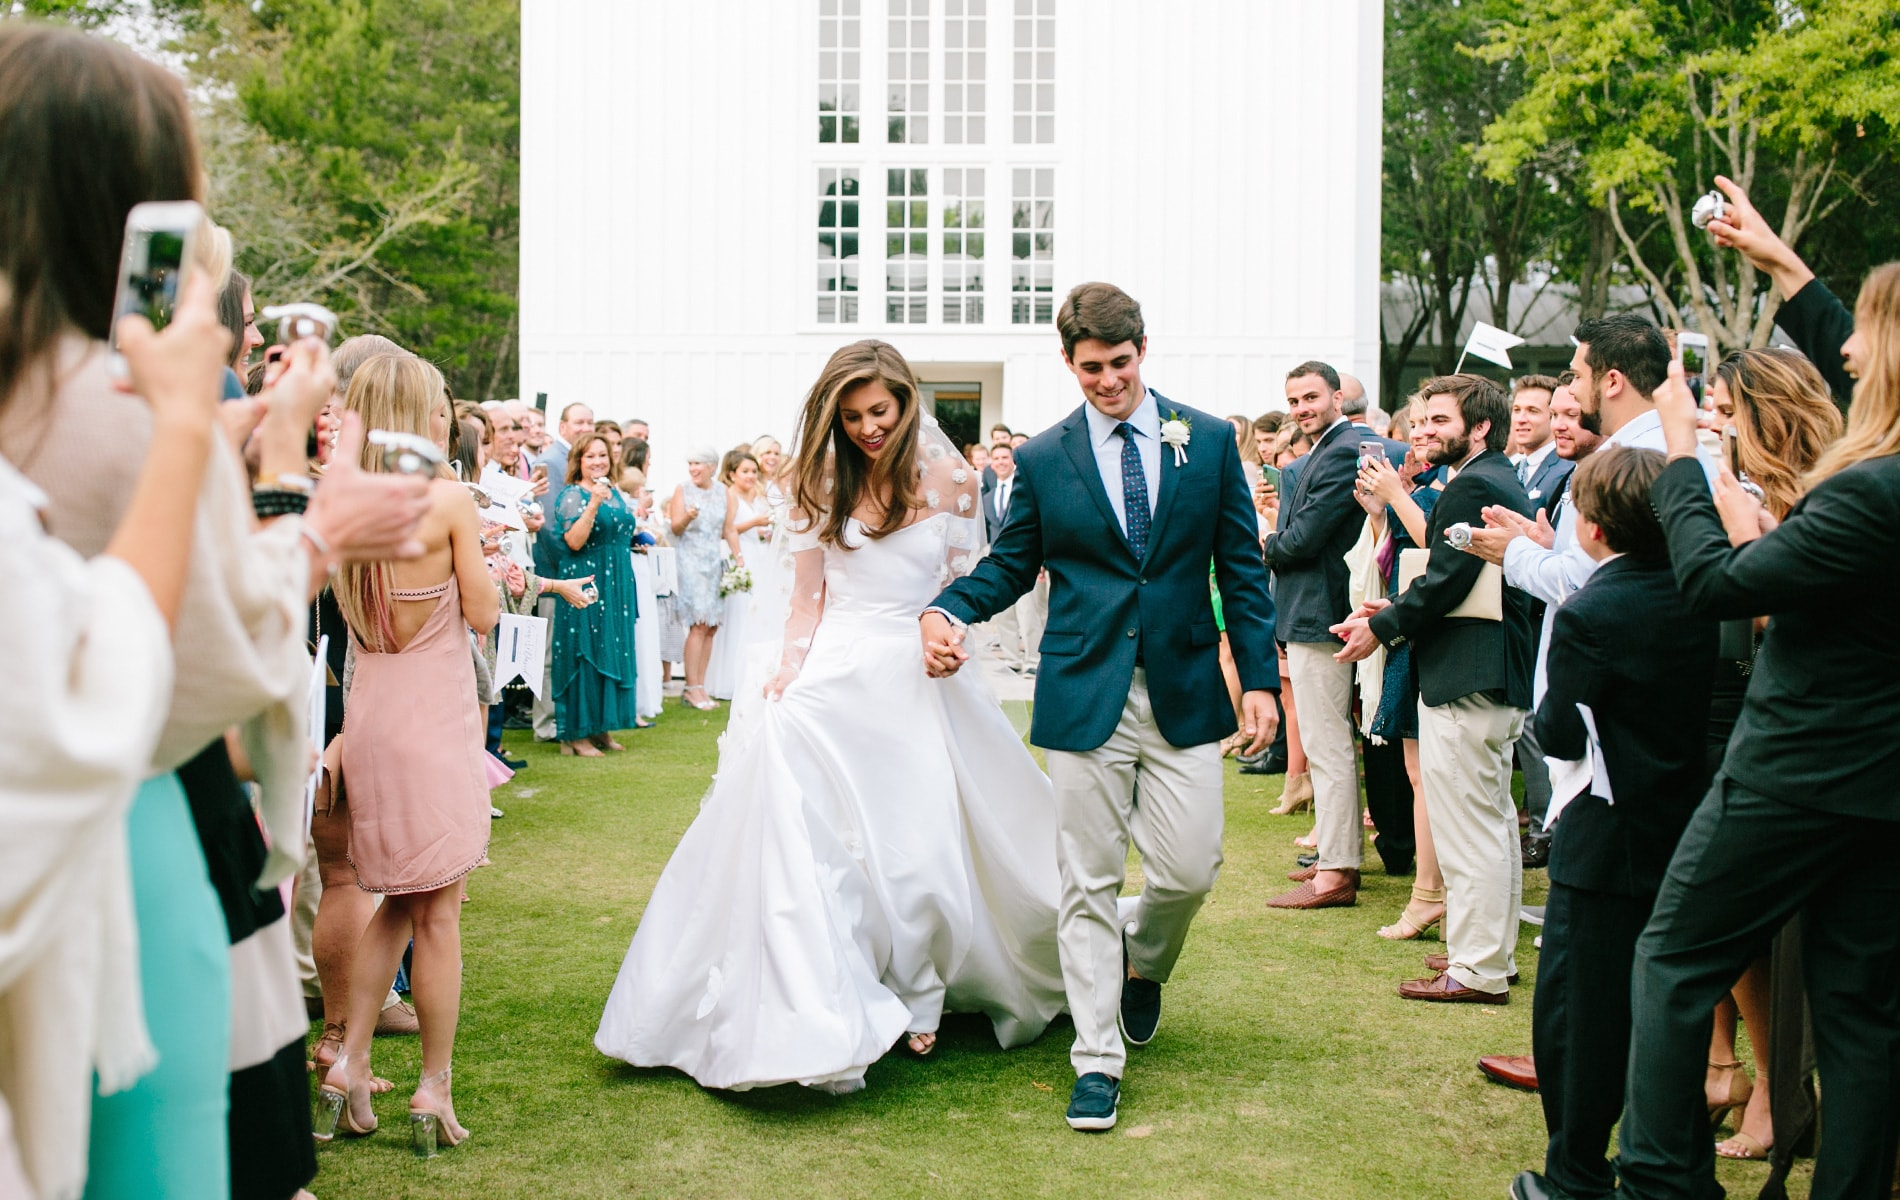 Evan & David Wedding at The Chapel at Seaside, Photos by Millie Holloman Photography